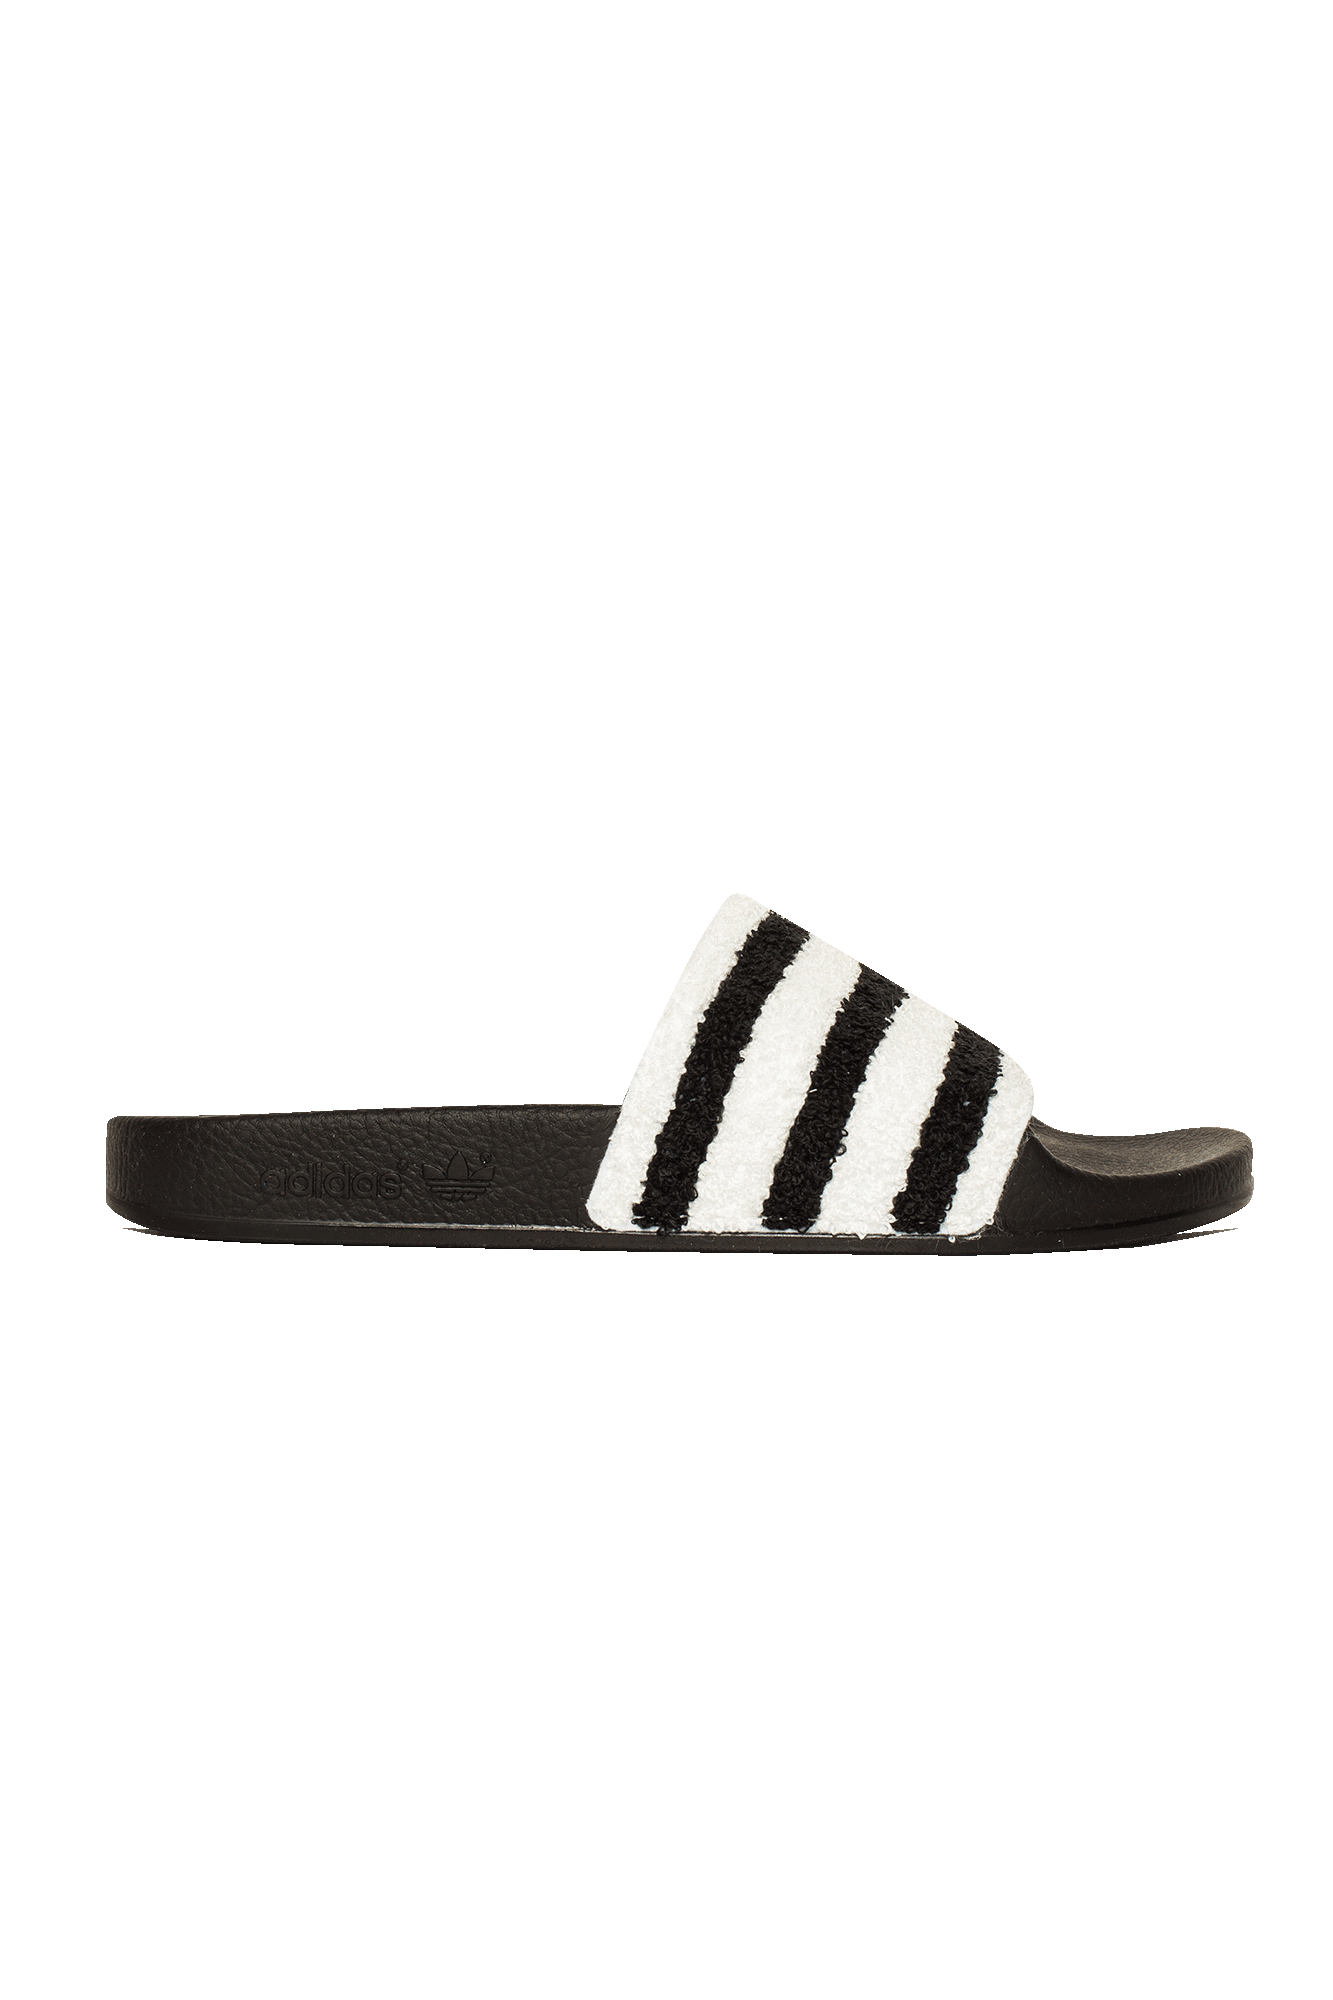 Adidas Originals Sandali & Ciabatte Adilette  Nero Nero - One Block Down